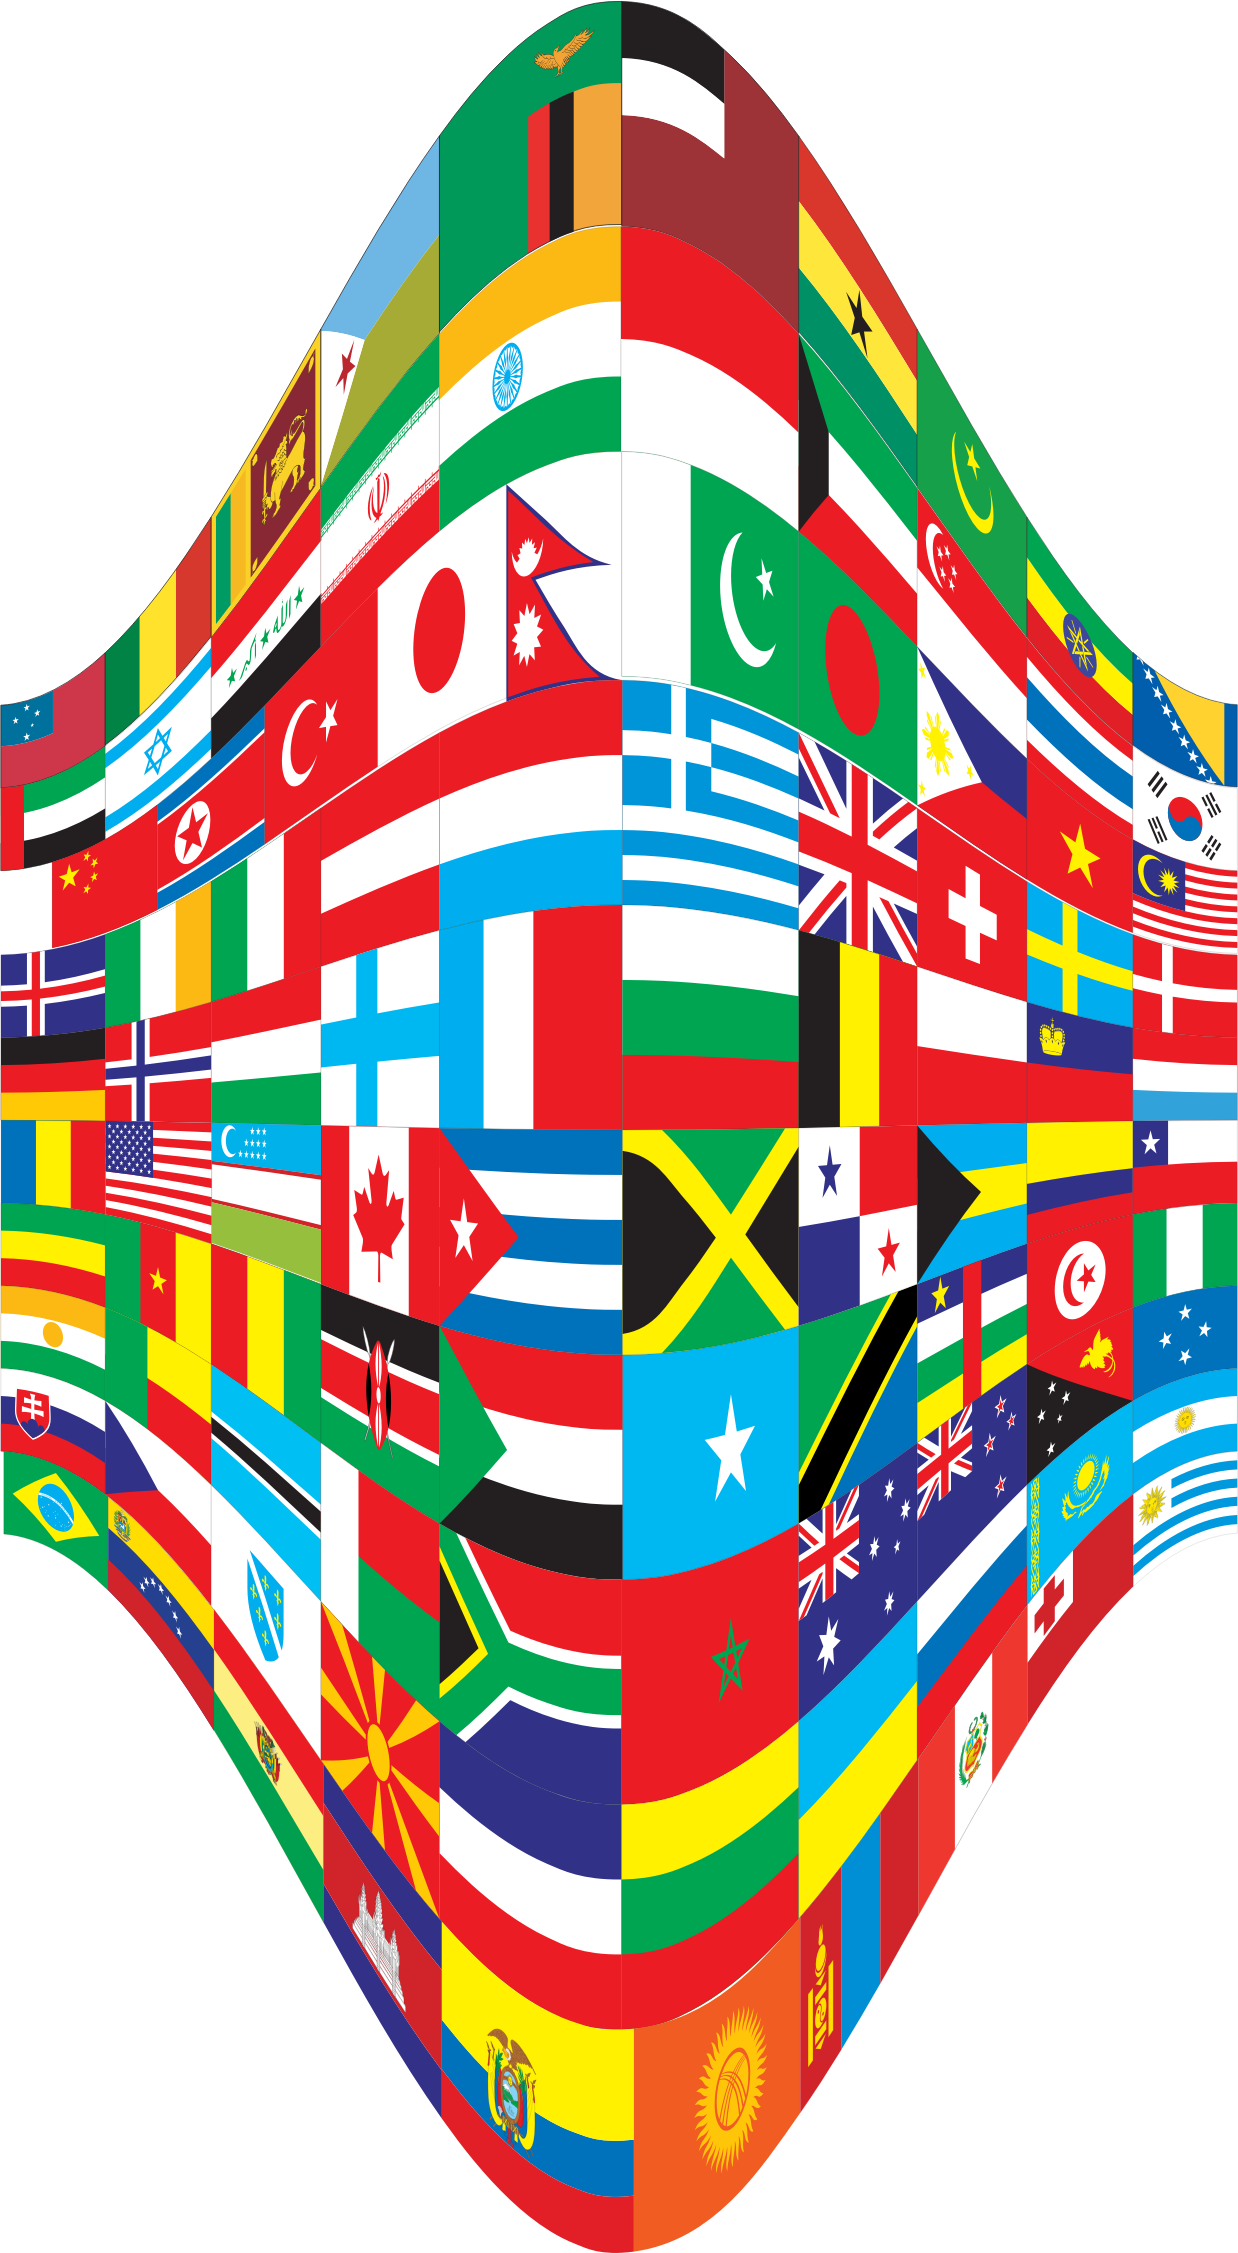 World Flags Perspective 2 by GDJ